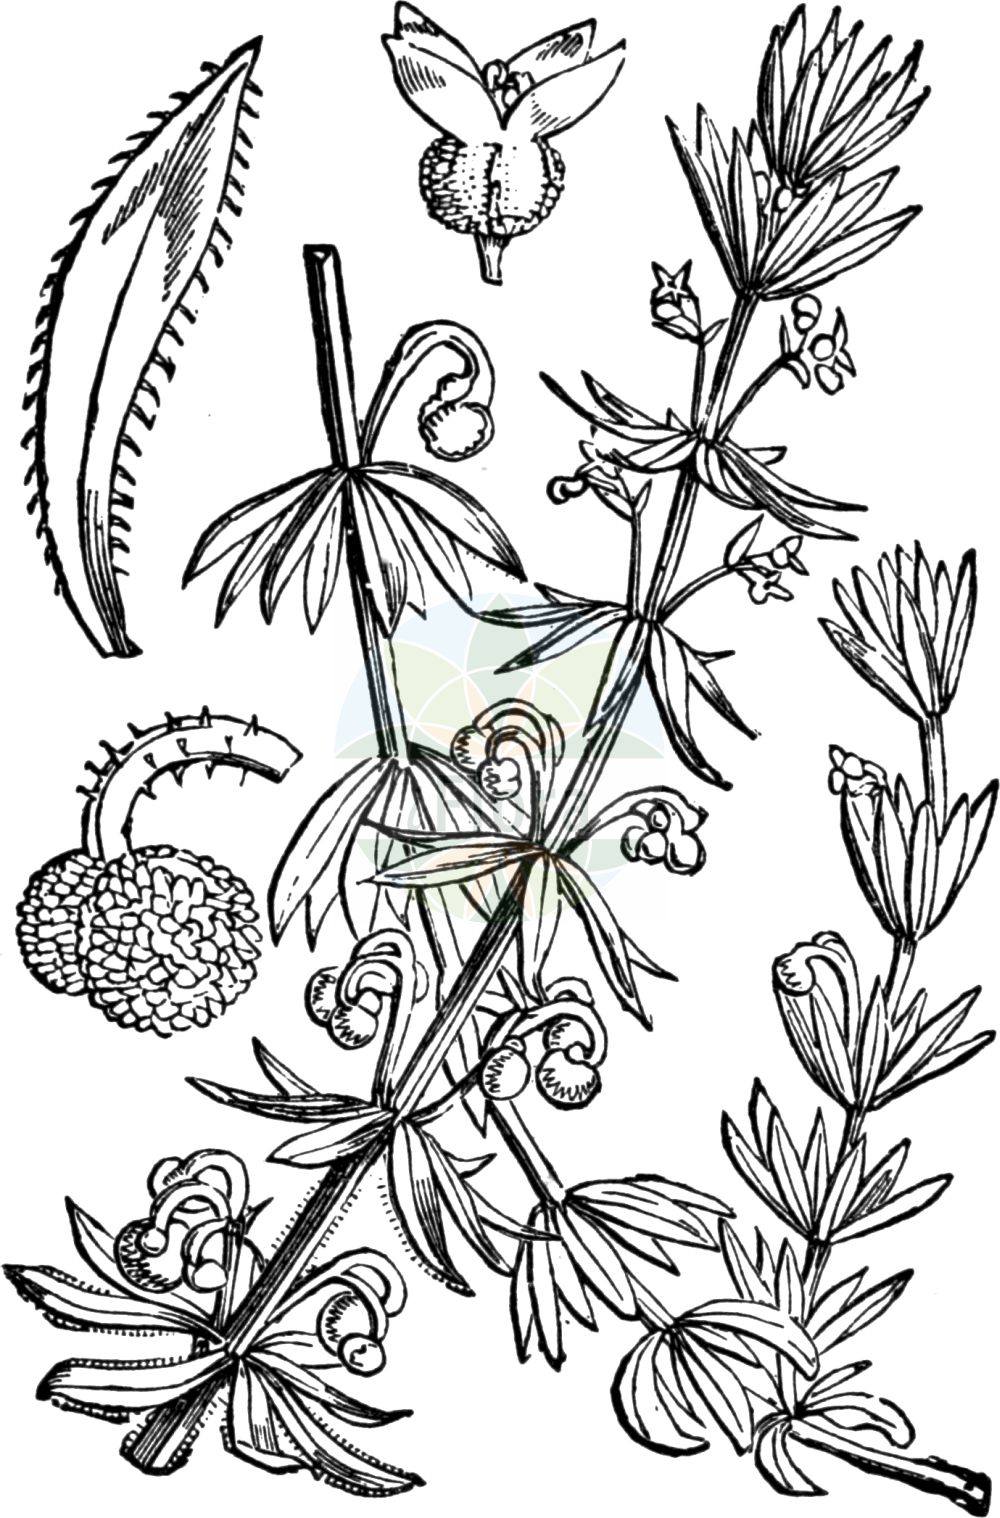 Historische Abbildung von Galium tricornutum (Dreihoerniges Labkraut - Corn Cleavers). Das Bild zeigt Blatt, Bluete, Frucht und Same. ---- Historical Drawing of Galium tricornutum (Dreihoerniges Labkraut - Corn Cleavers).The image is showing leaf, flower, fruit and seed.(Galium tricornutum,Dreihoerniges Labkraut,Corn Cleavers,Galium tricorne,Galium tricornutum,Dreihoerniges Labkraut,Corn Cleavers,Roughfruit Corn Bedstraw,Rough Corn Bedstraw,Rough Corn Cleavers,Small Goosegrass,Three-horn Bedstraw,Galium,Labkraut,Bedstraw,Rubiaceae,Roetegewaechse,Kaffeegewaechse,Krappgewaechse,Labkrautgewaechse,Bedstraw family,Blatt,Bluete,Frucht,Same,leaf,flower,fruit,seed,Fitch et al. (1880))